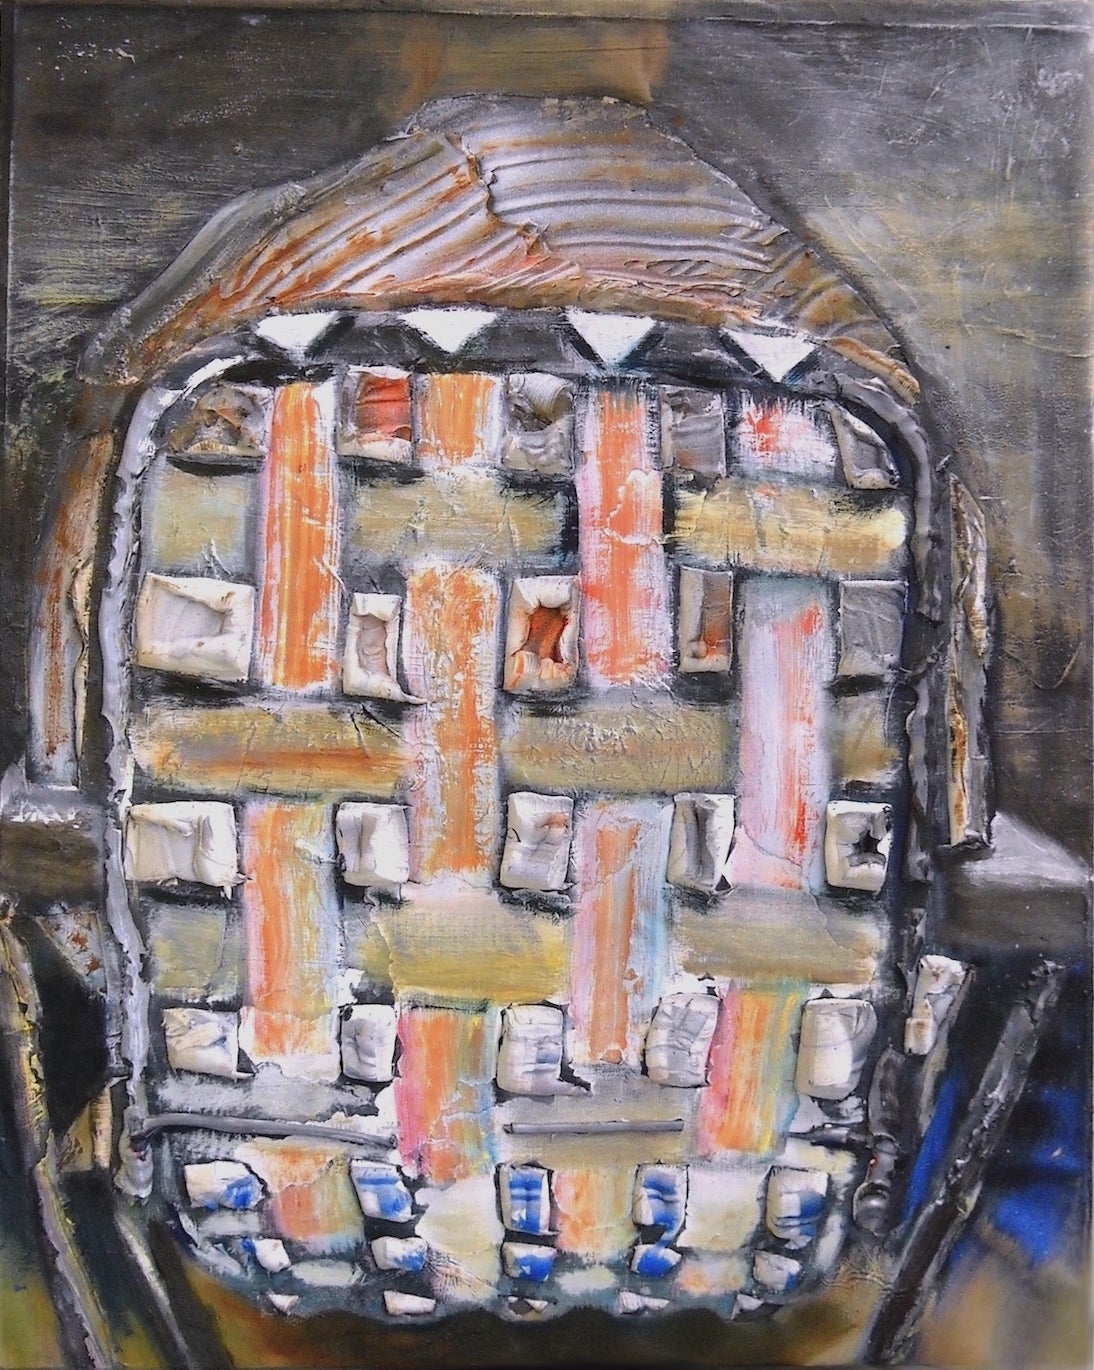 Fat Back - Contemporary Figurative/Abstract Oil Painting, texture, mixed media